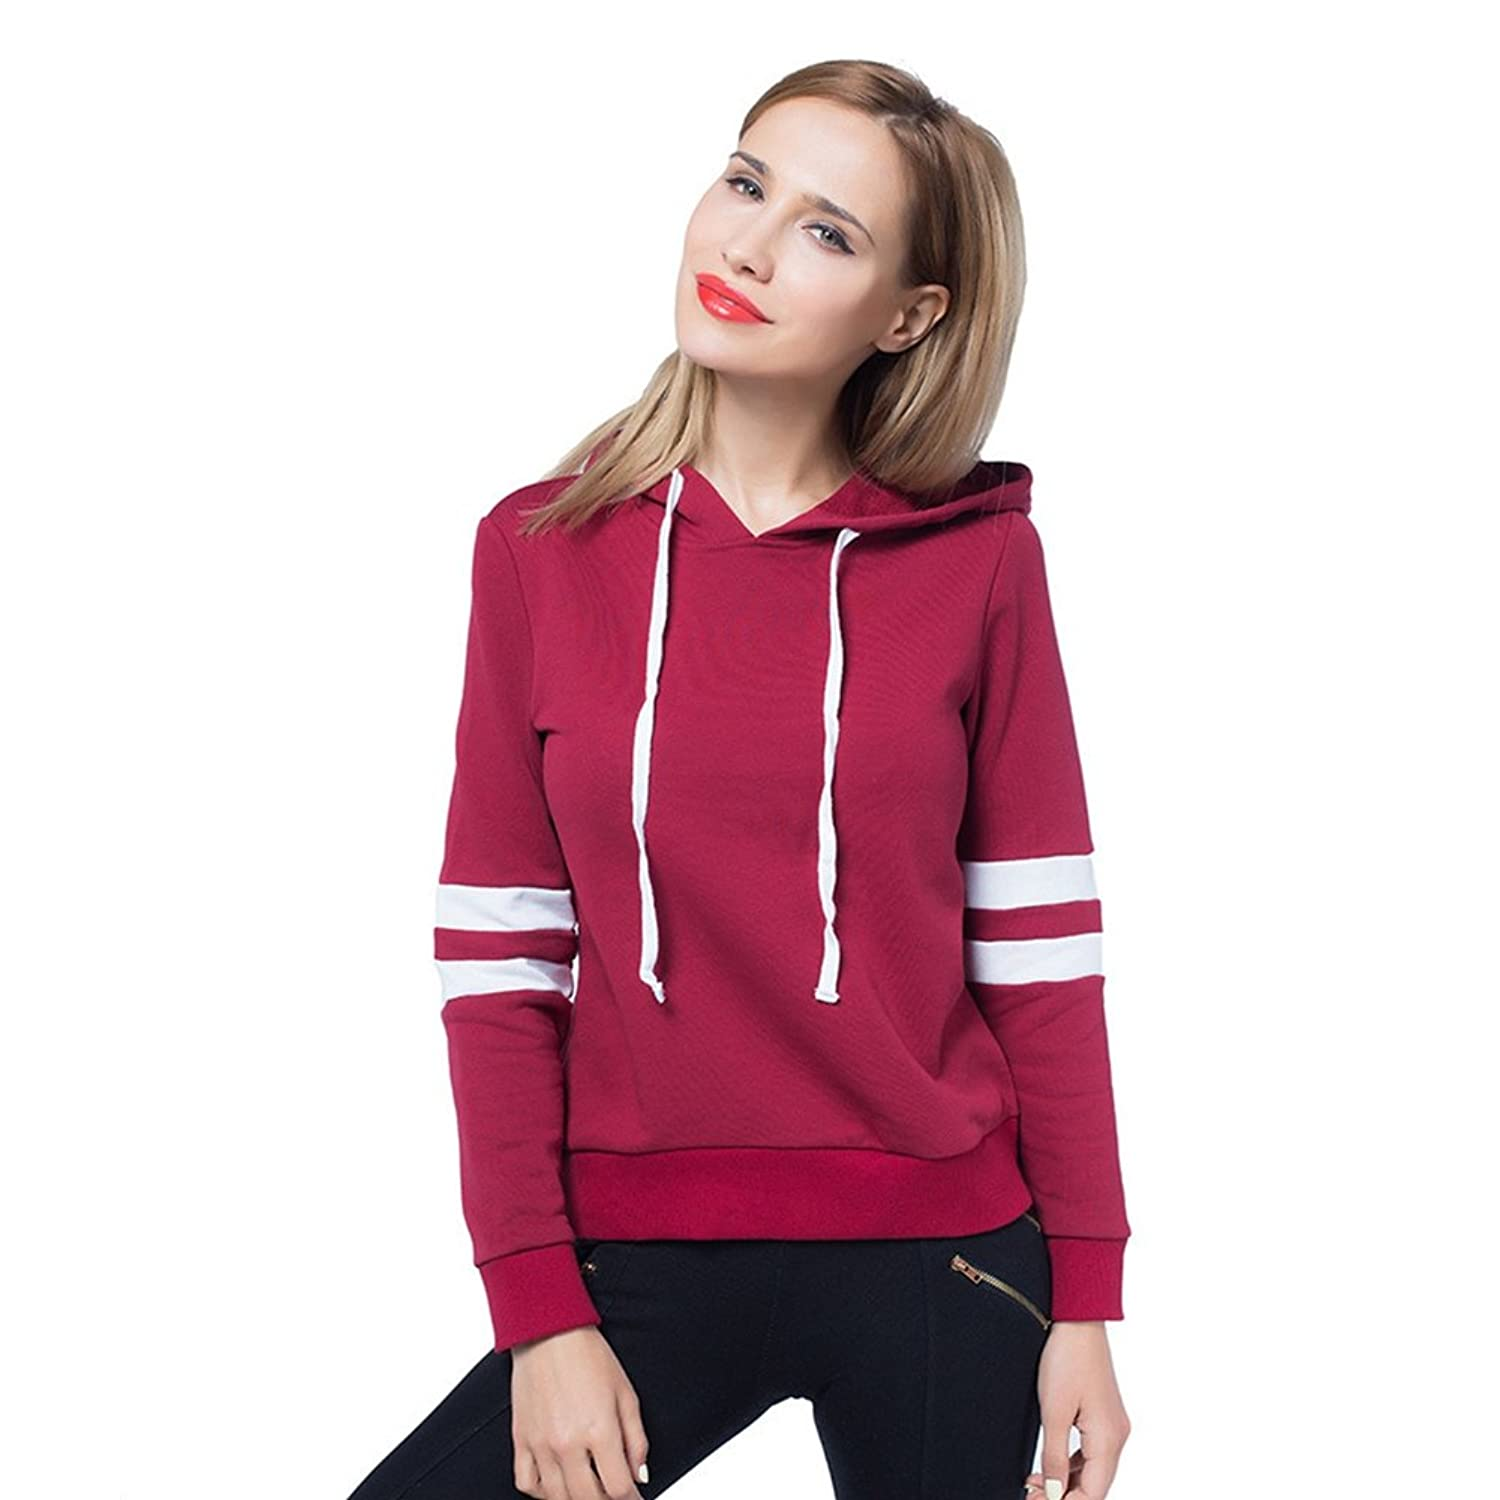 Abaobao Long Sleeve Hoodies for Women and Girls, Womens Cotton Pullover  Fashion Tops Clothing Supreme